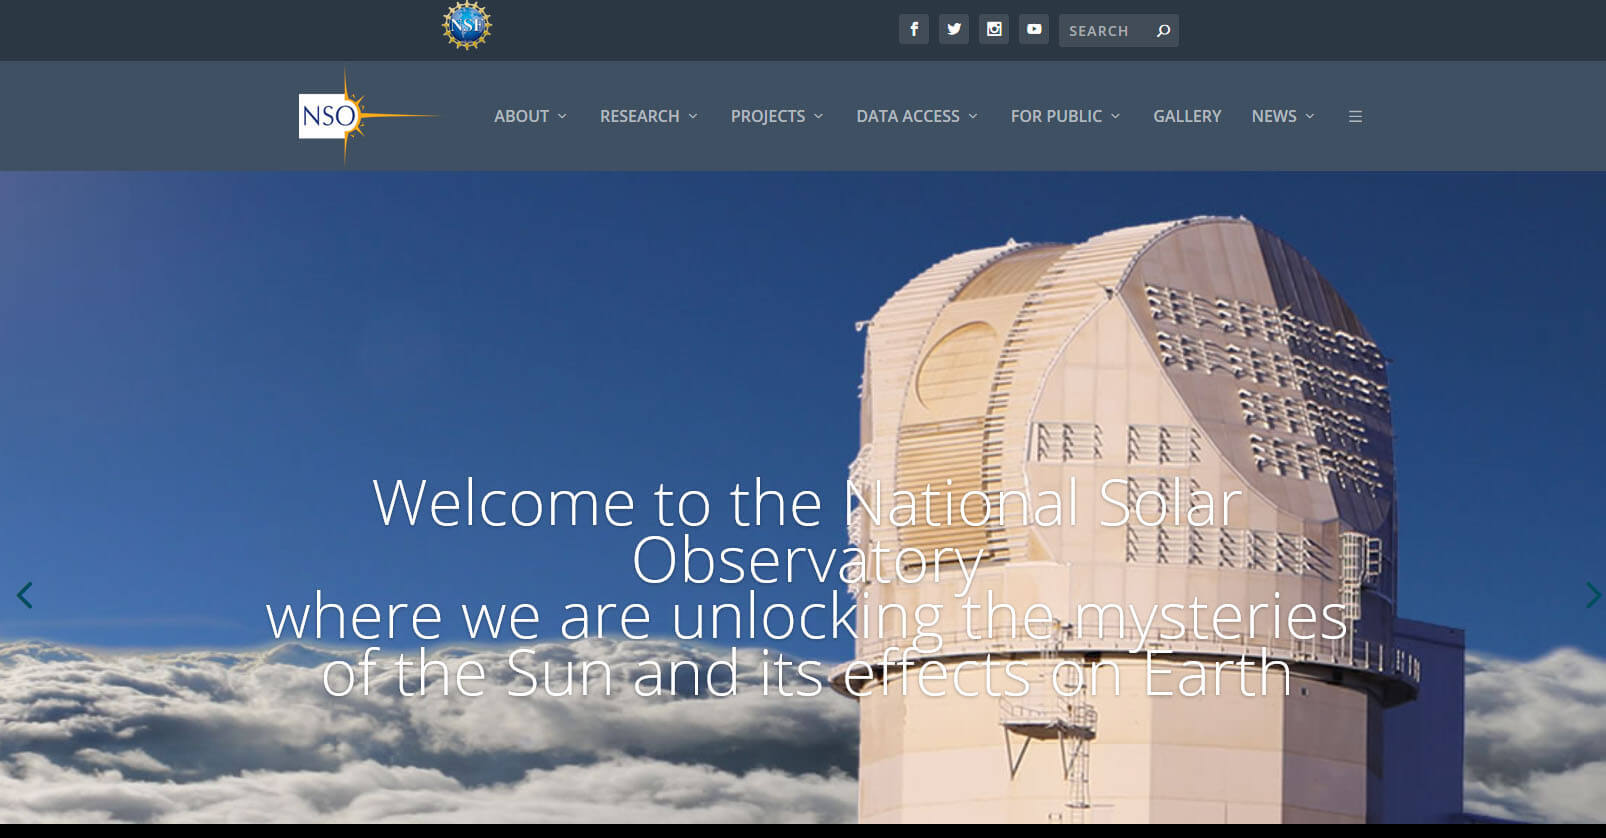 nso_website_featured